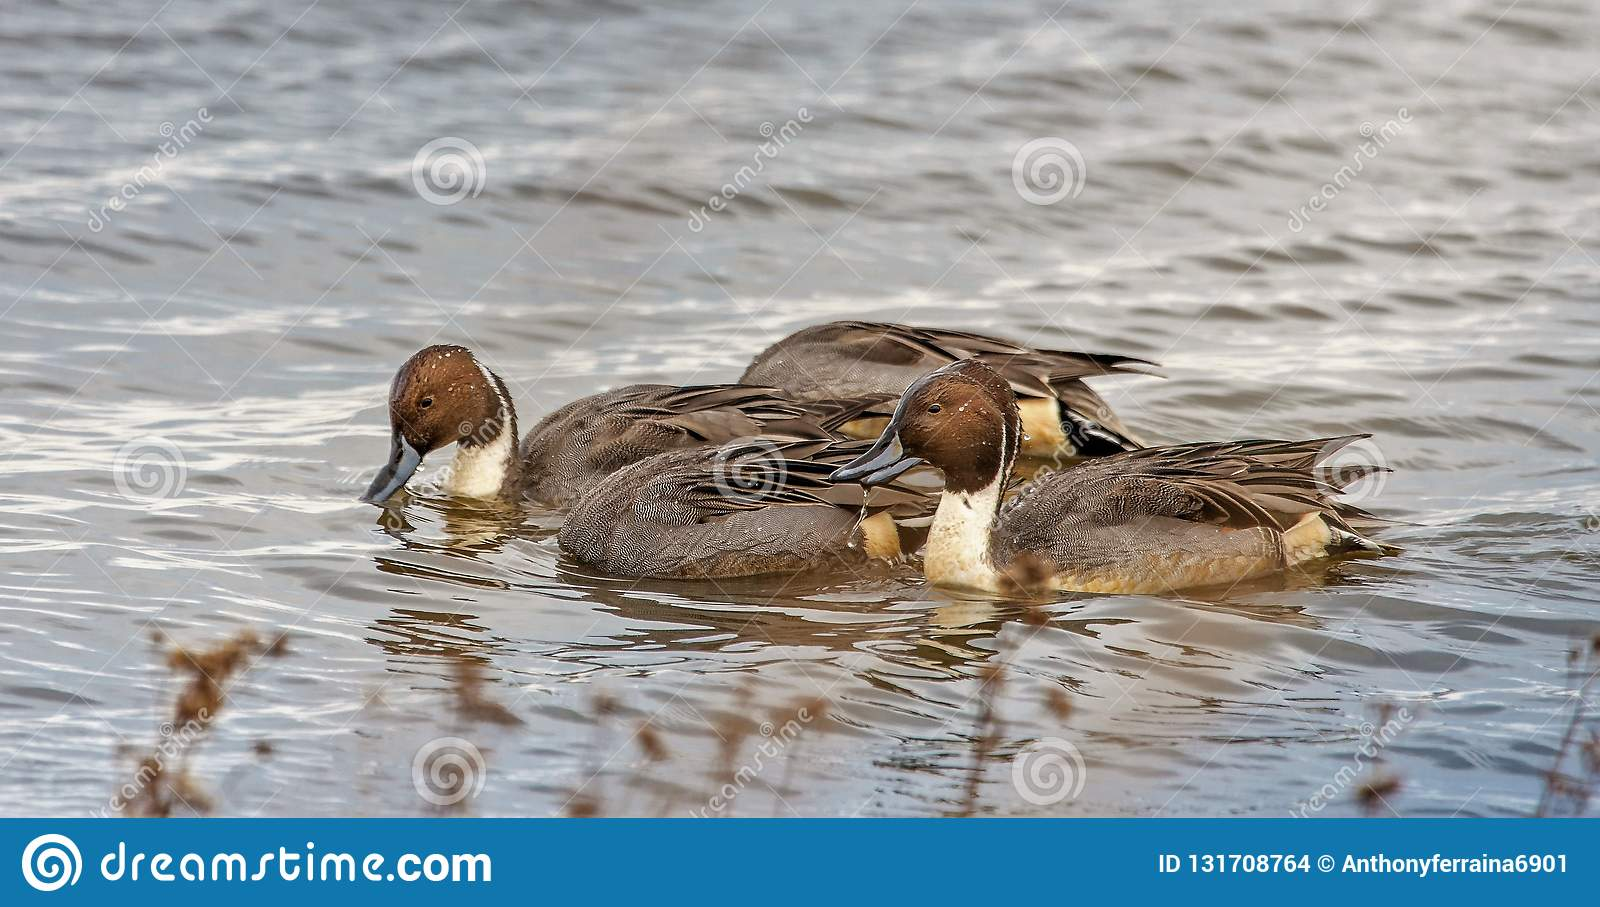 Northern Pintail Ducks under water